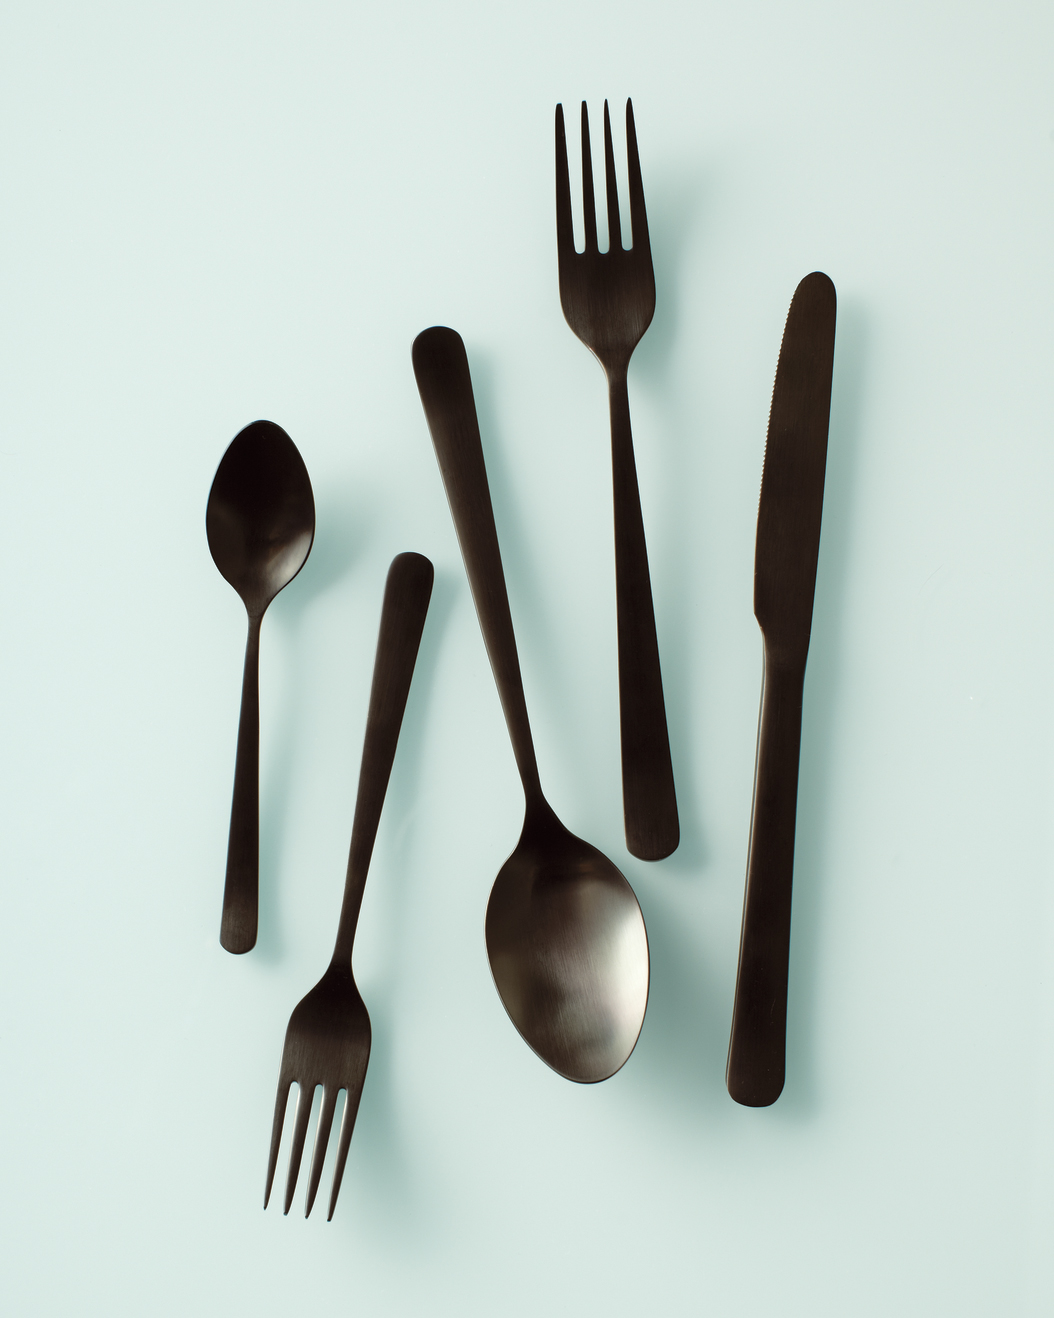 Almoco Stainless Steel Flatware